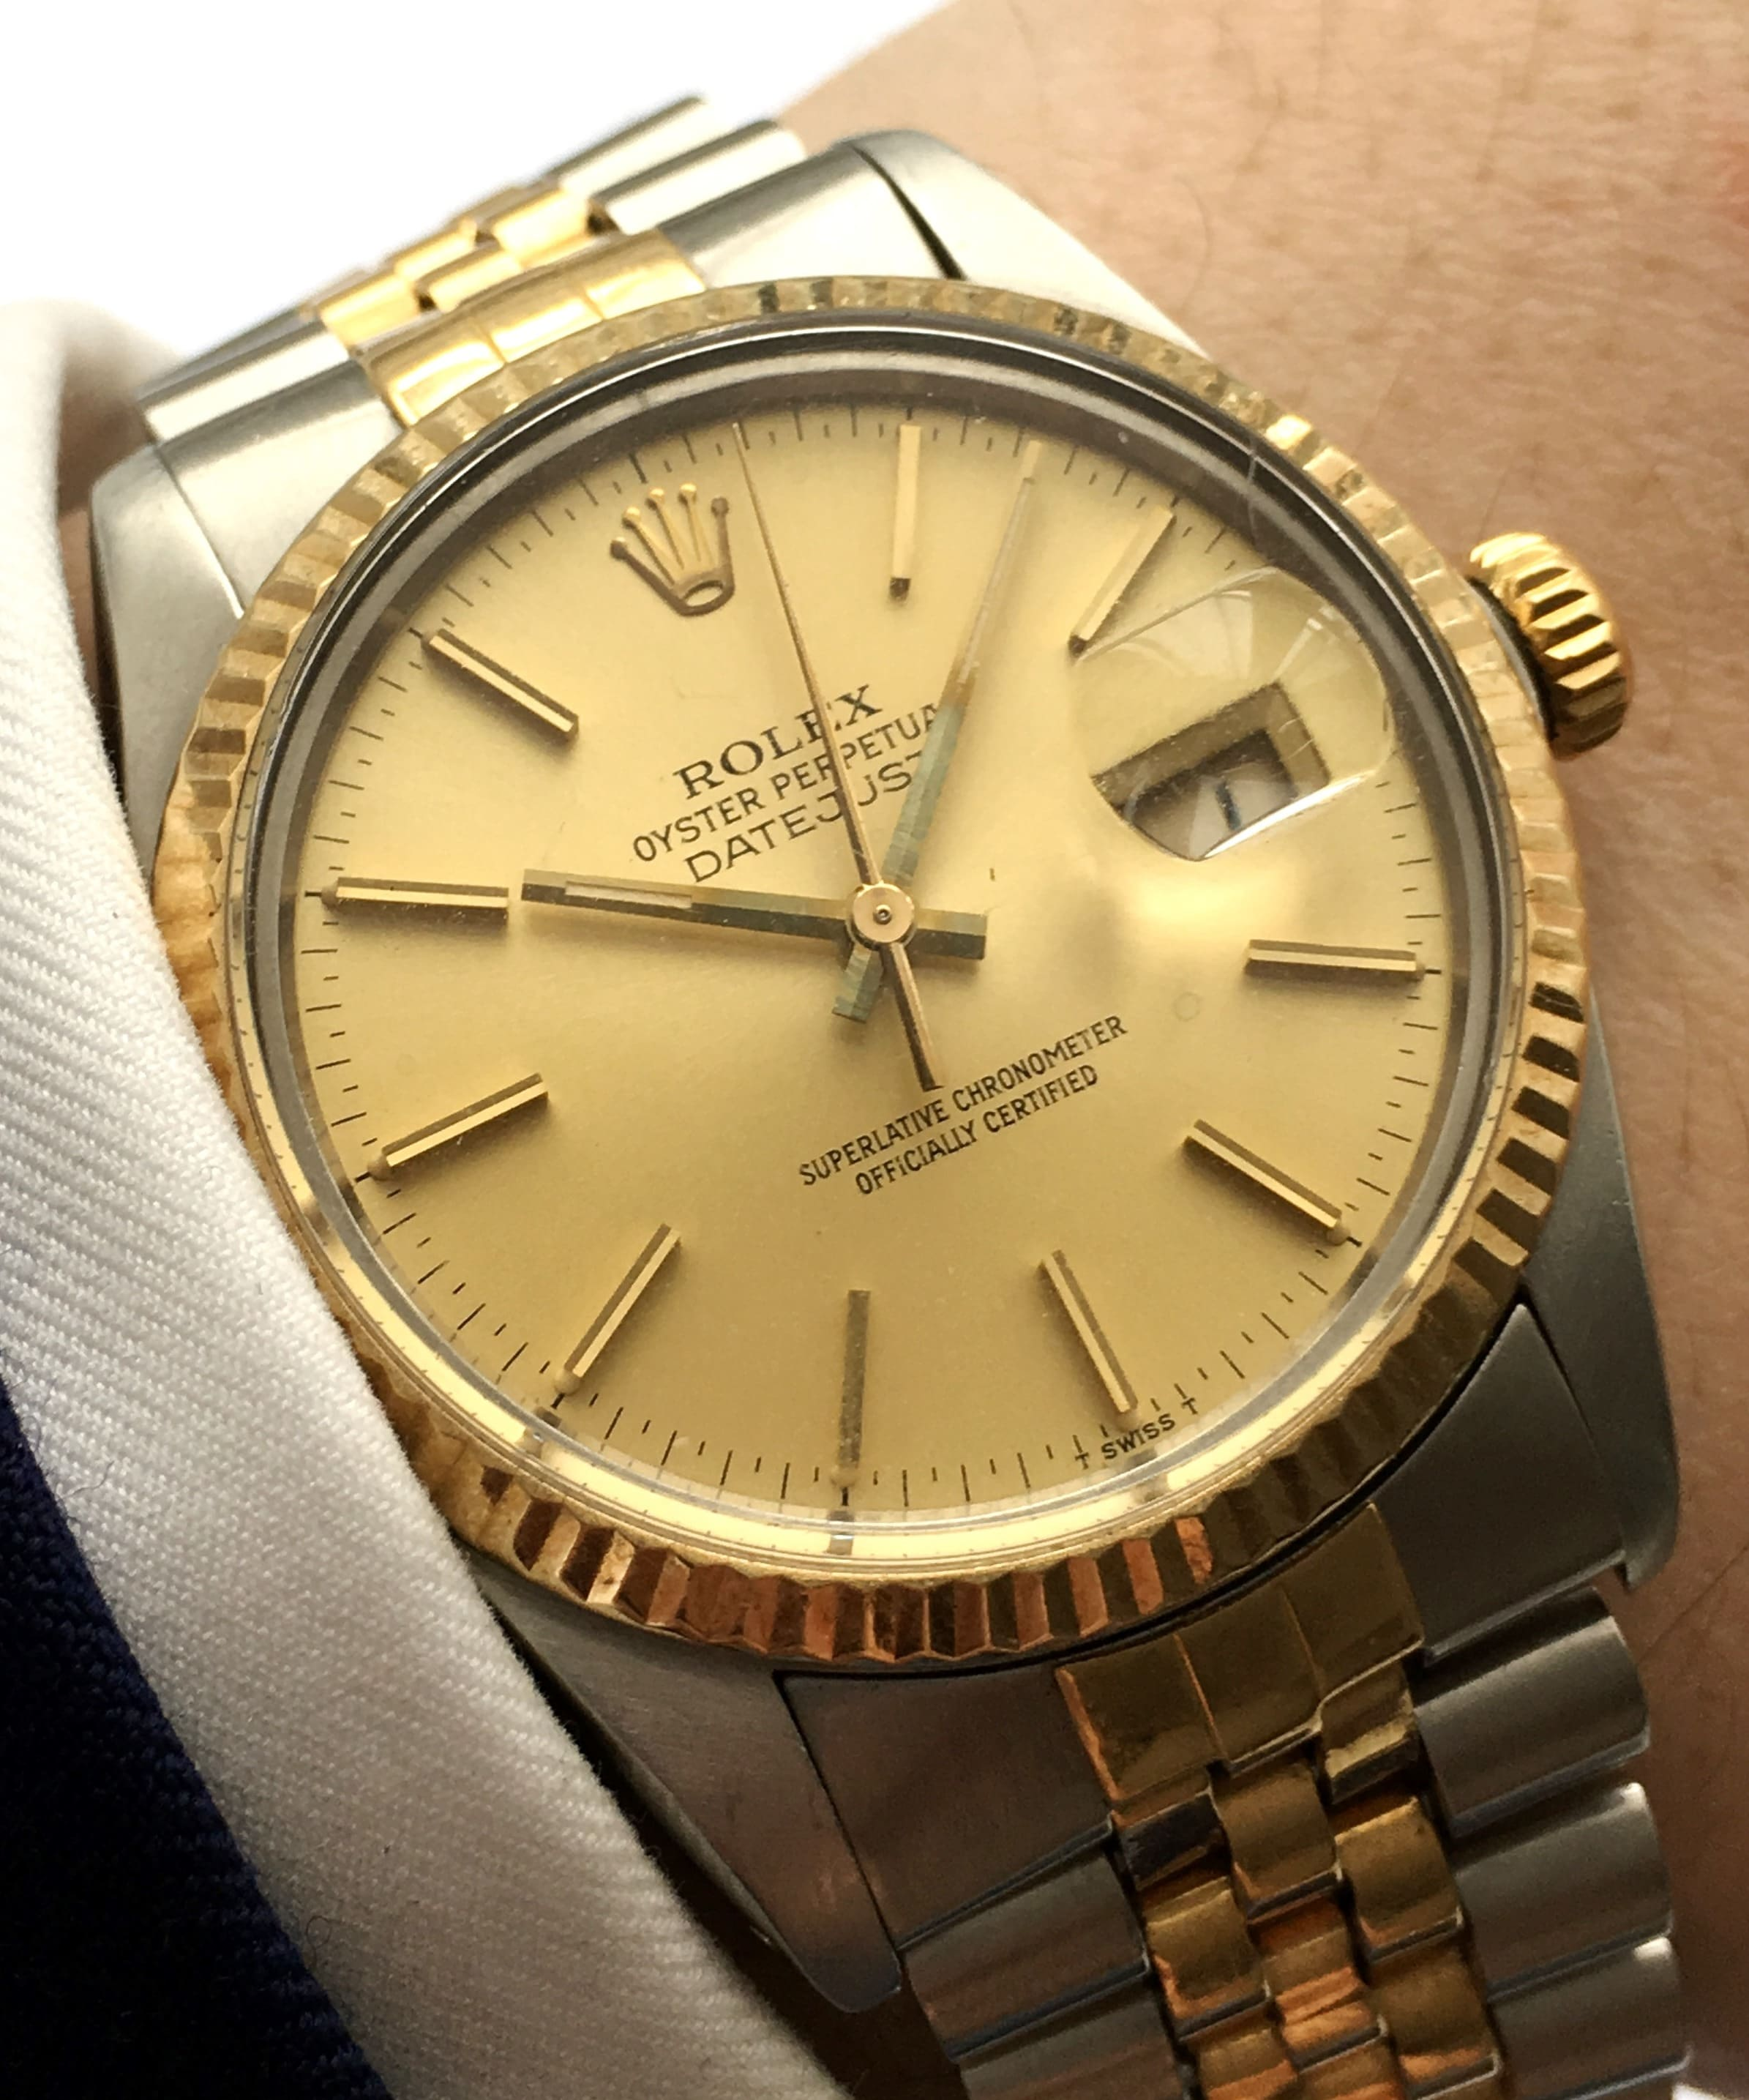 rolex datejust 16013 vintage stahl gold jubilee band. Black Bedroom Furniture Sets. Home Design Ideas